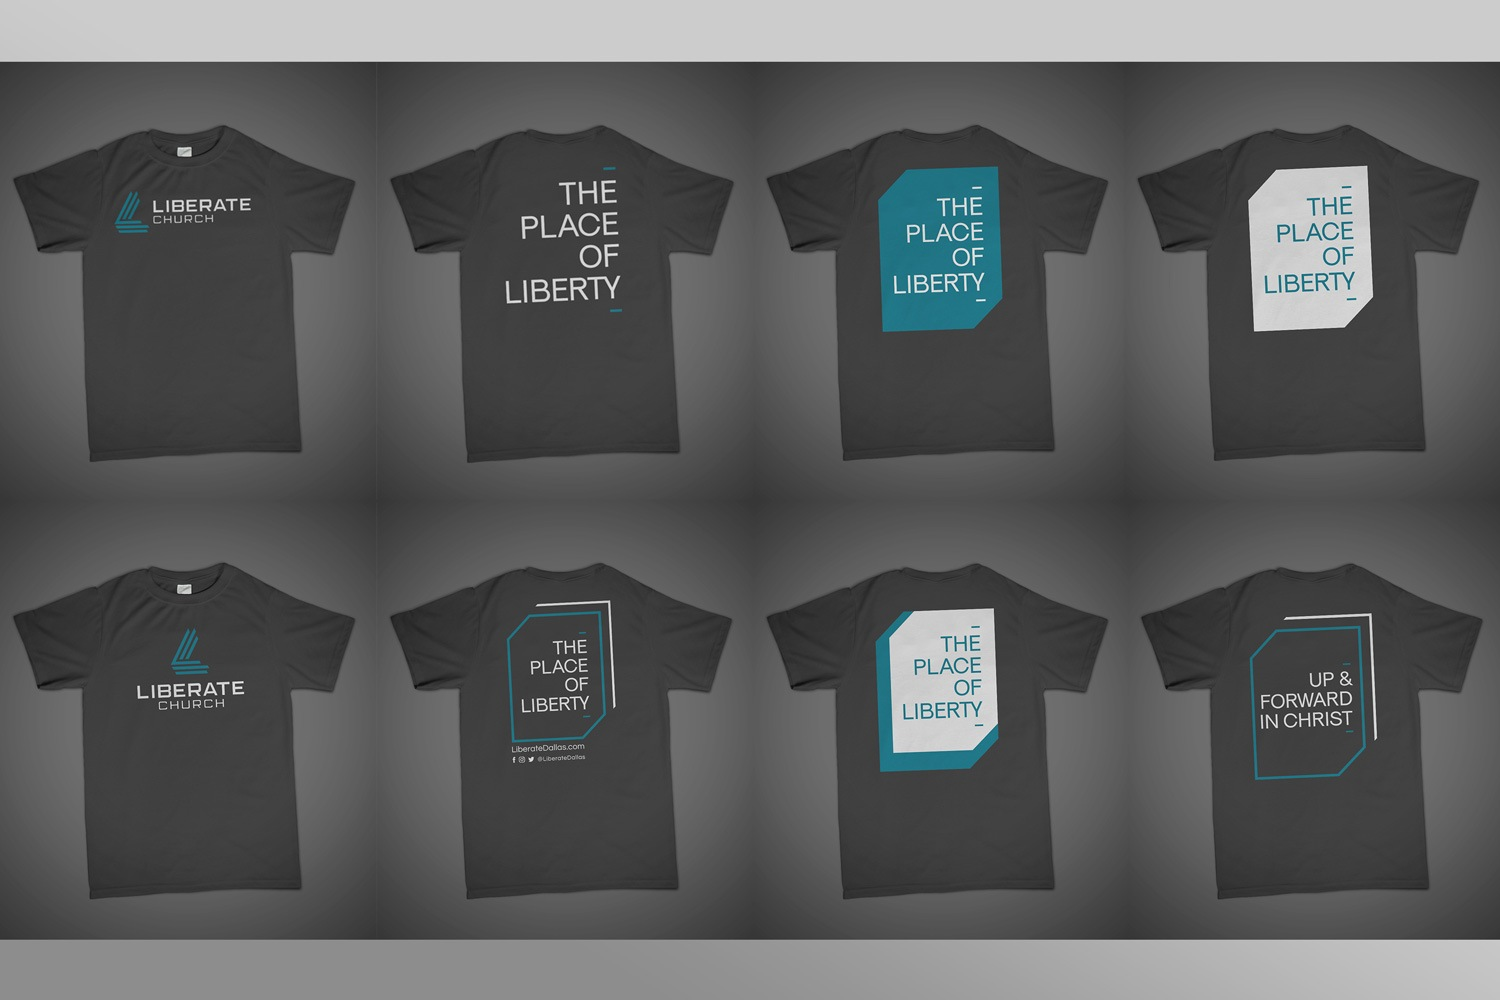 Church t-shirt design for church branding guide and logo samples